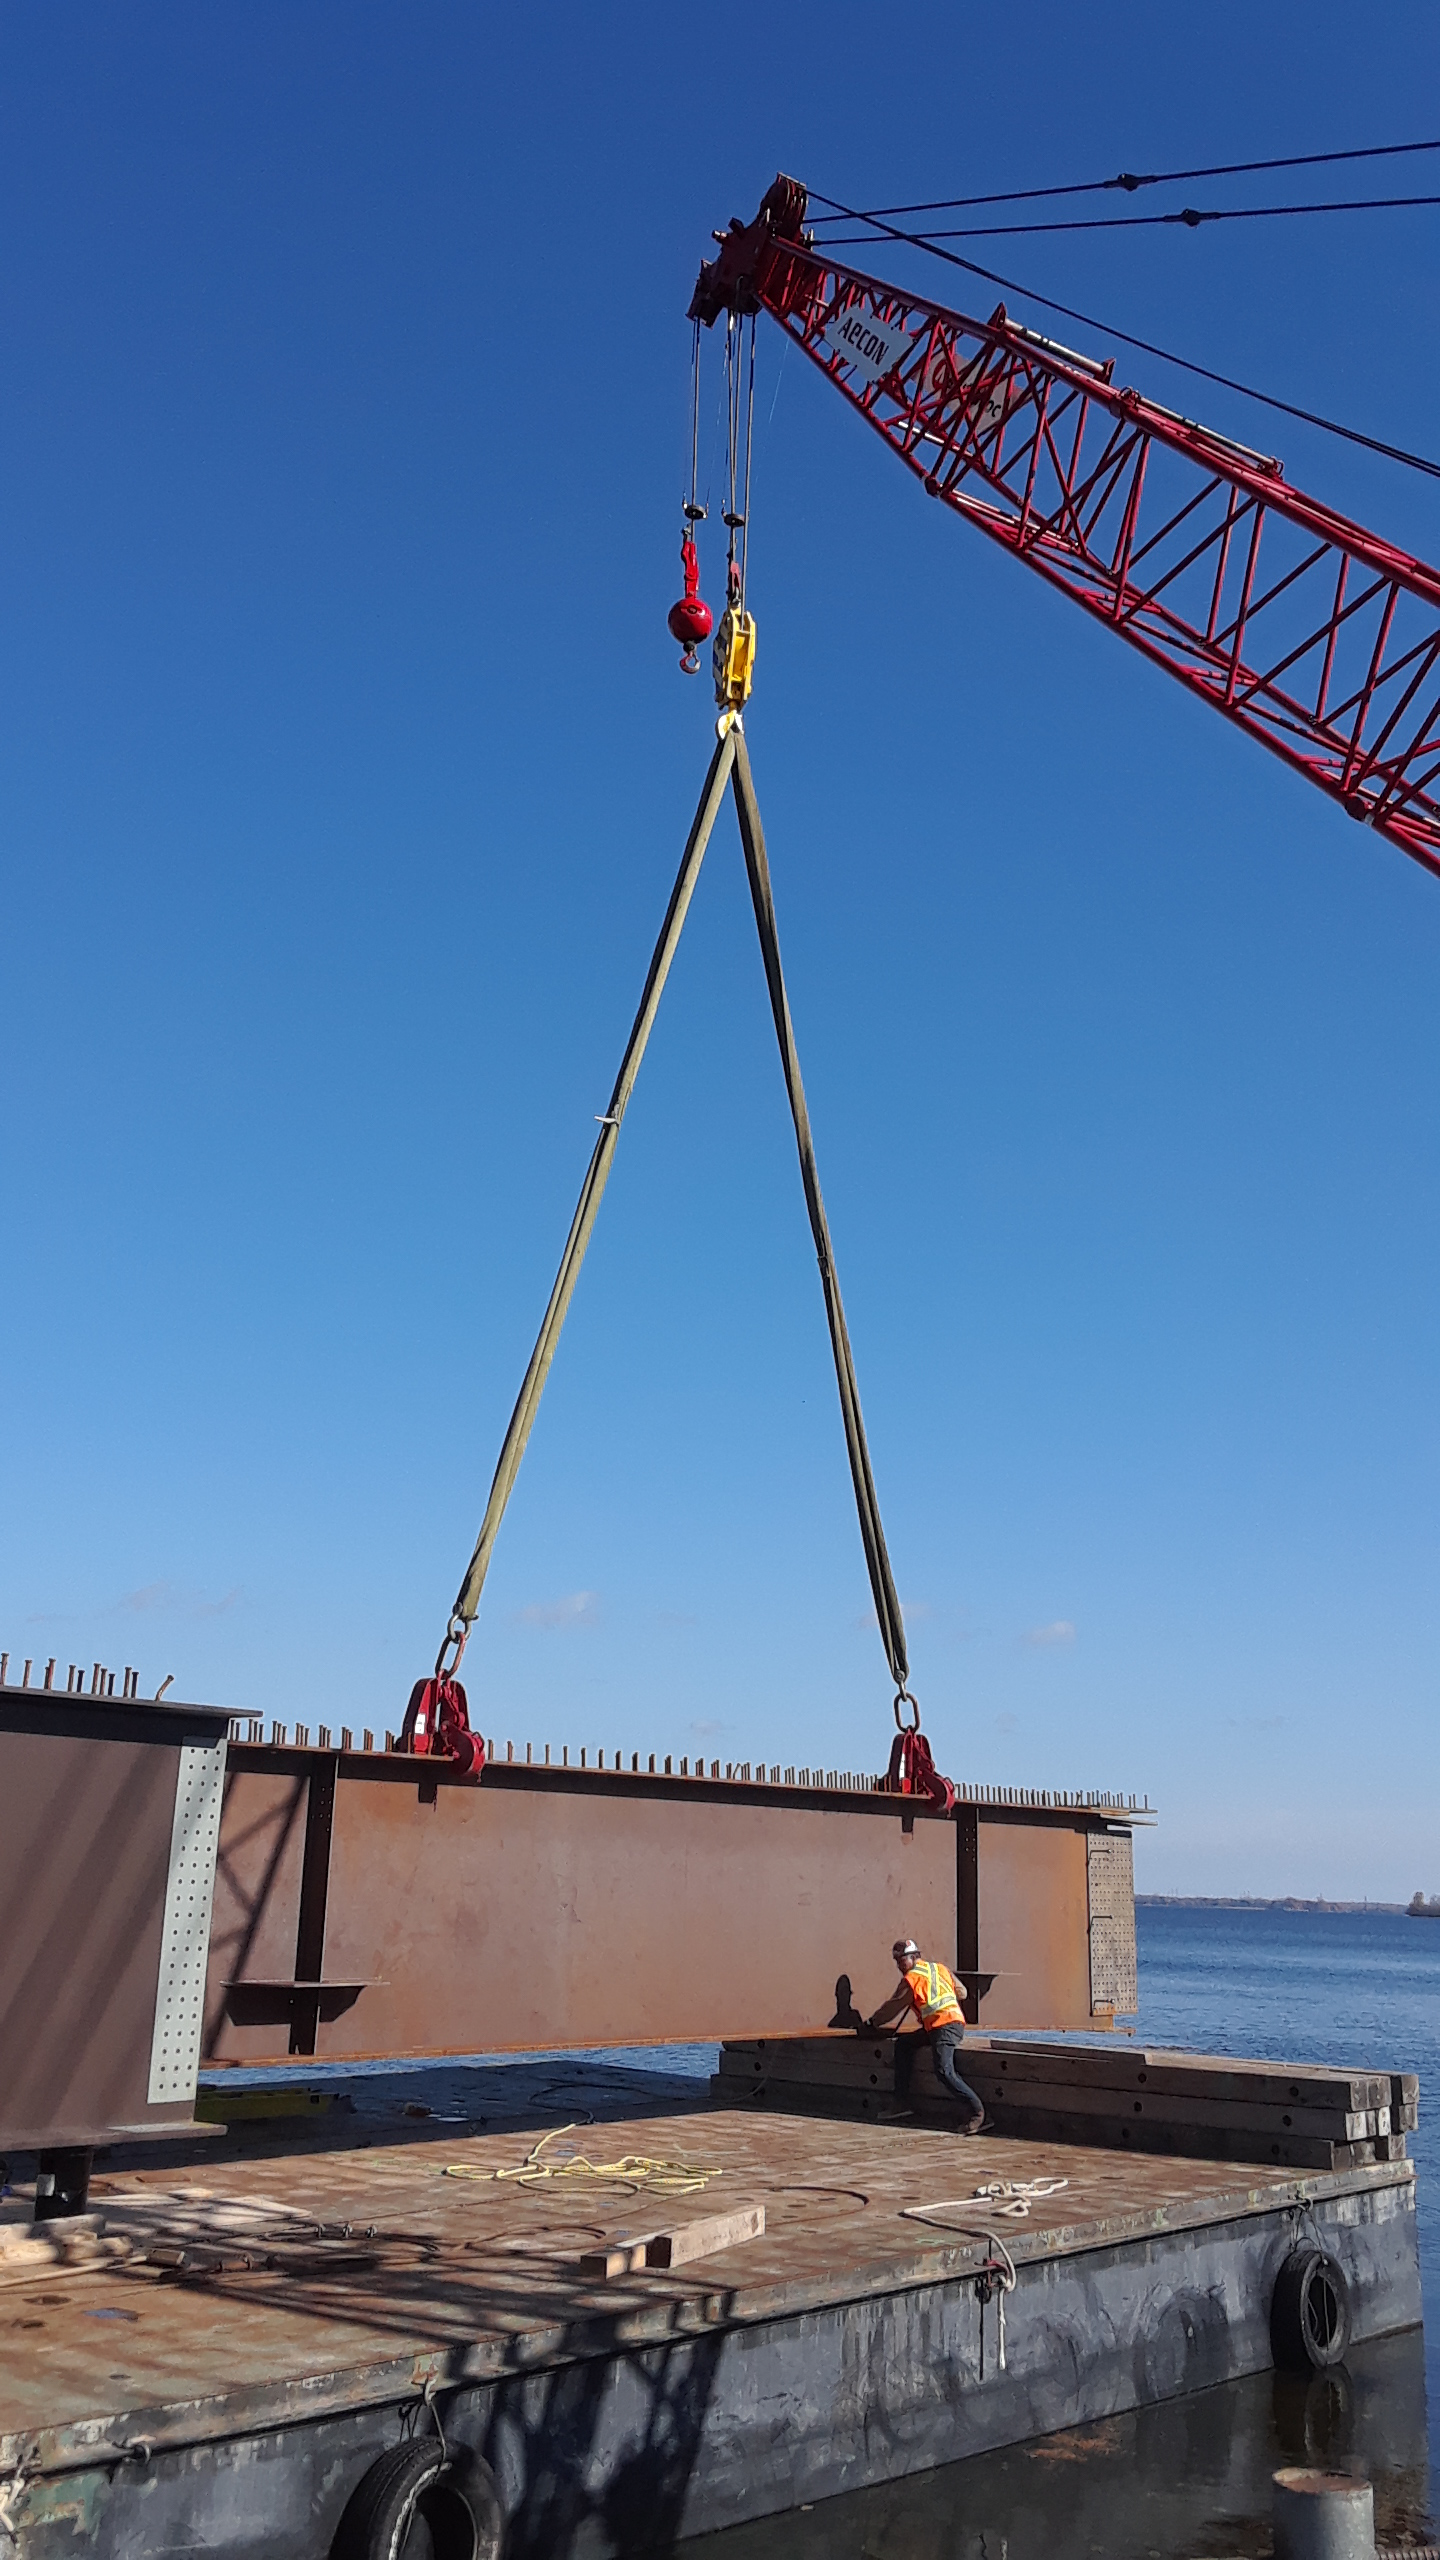 Placing girder section on to the barge for assembly